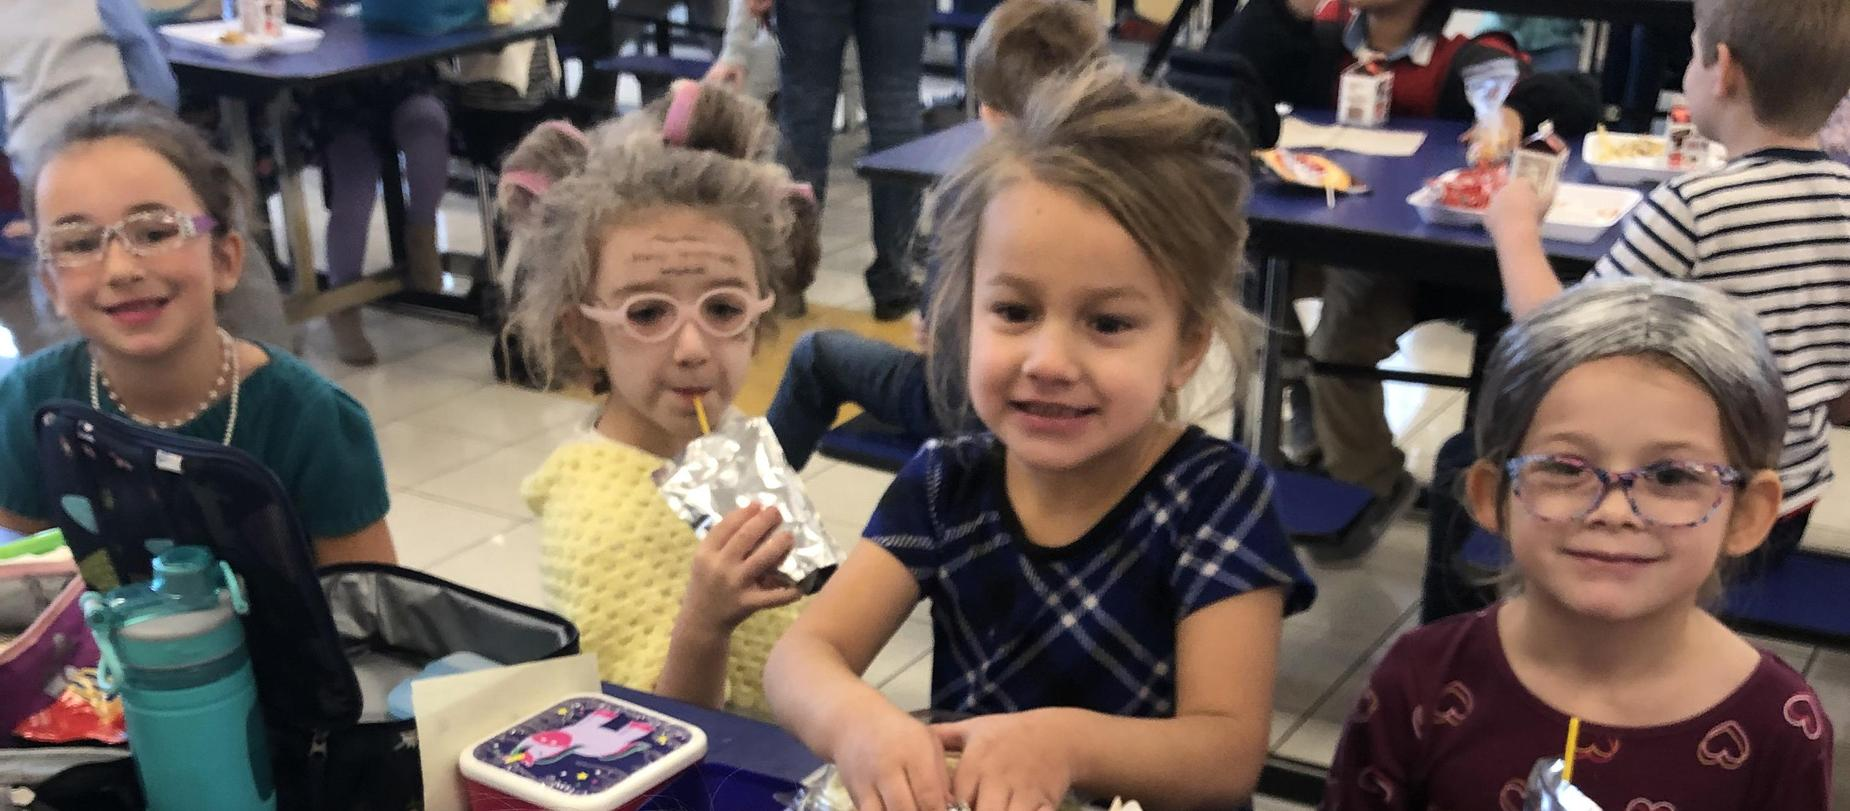 girls dressed as 100 year old